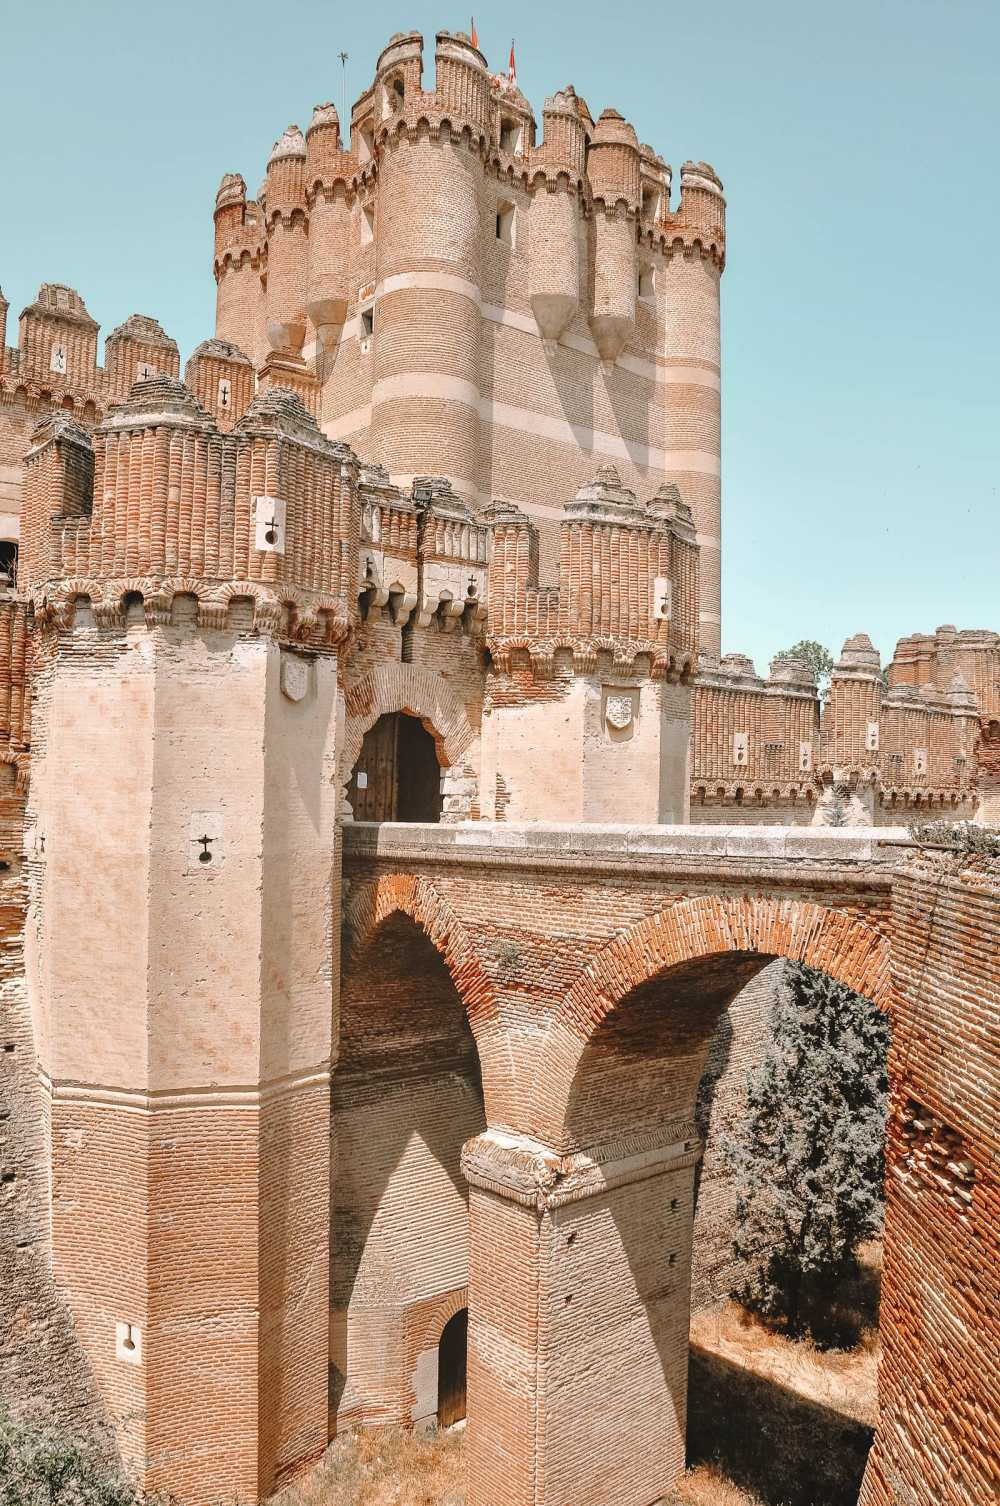 Pretty Castles In Europe To Visit (21)